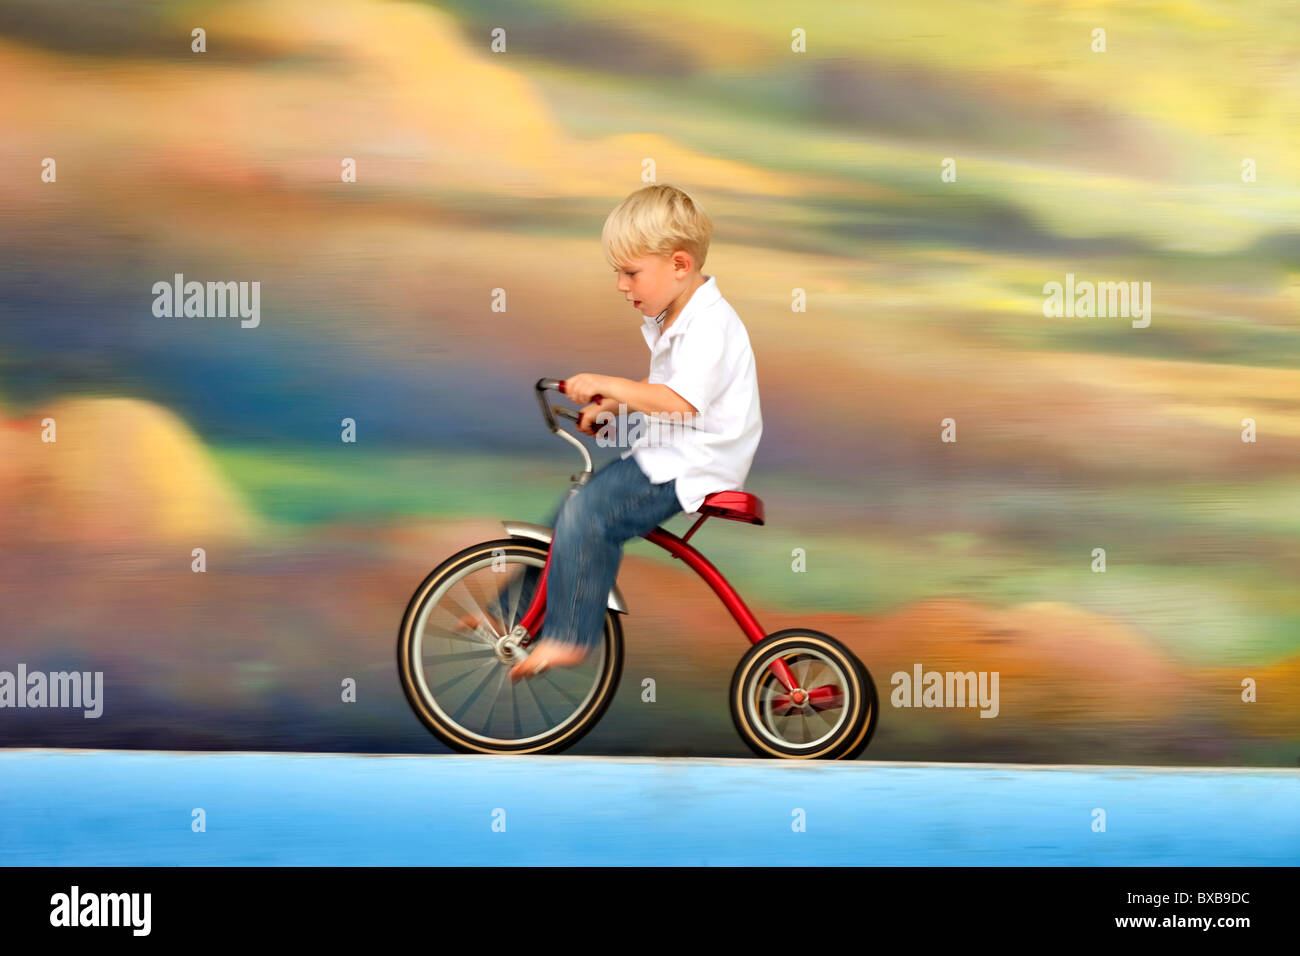 Young boy riding tricycle against colorful sky with clouds - Stock Image